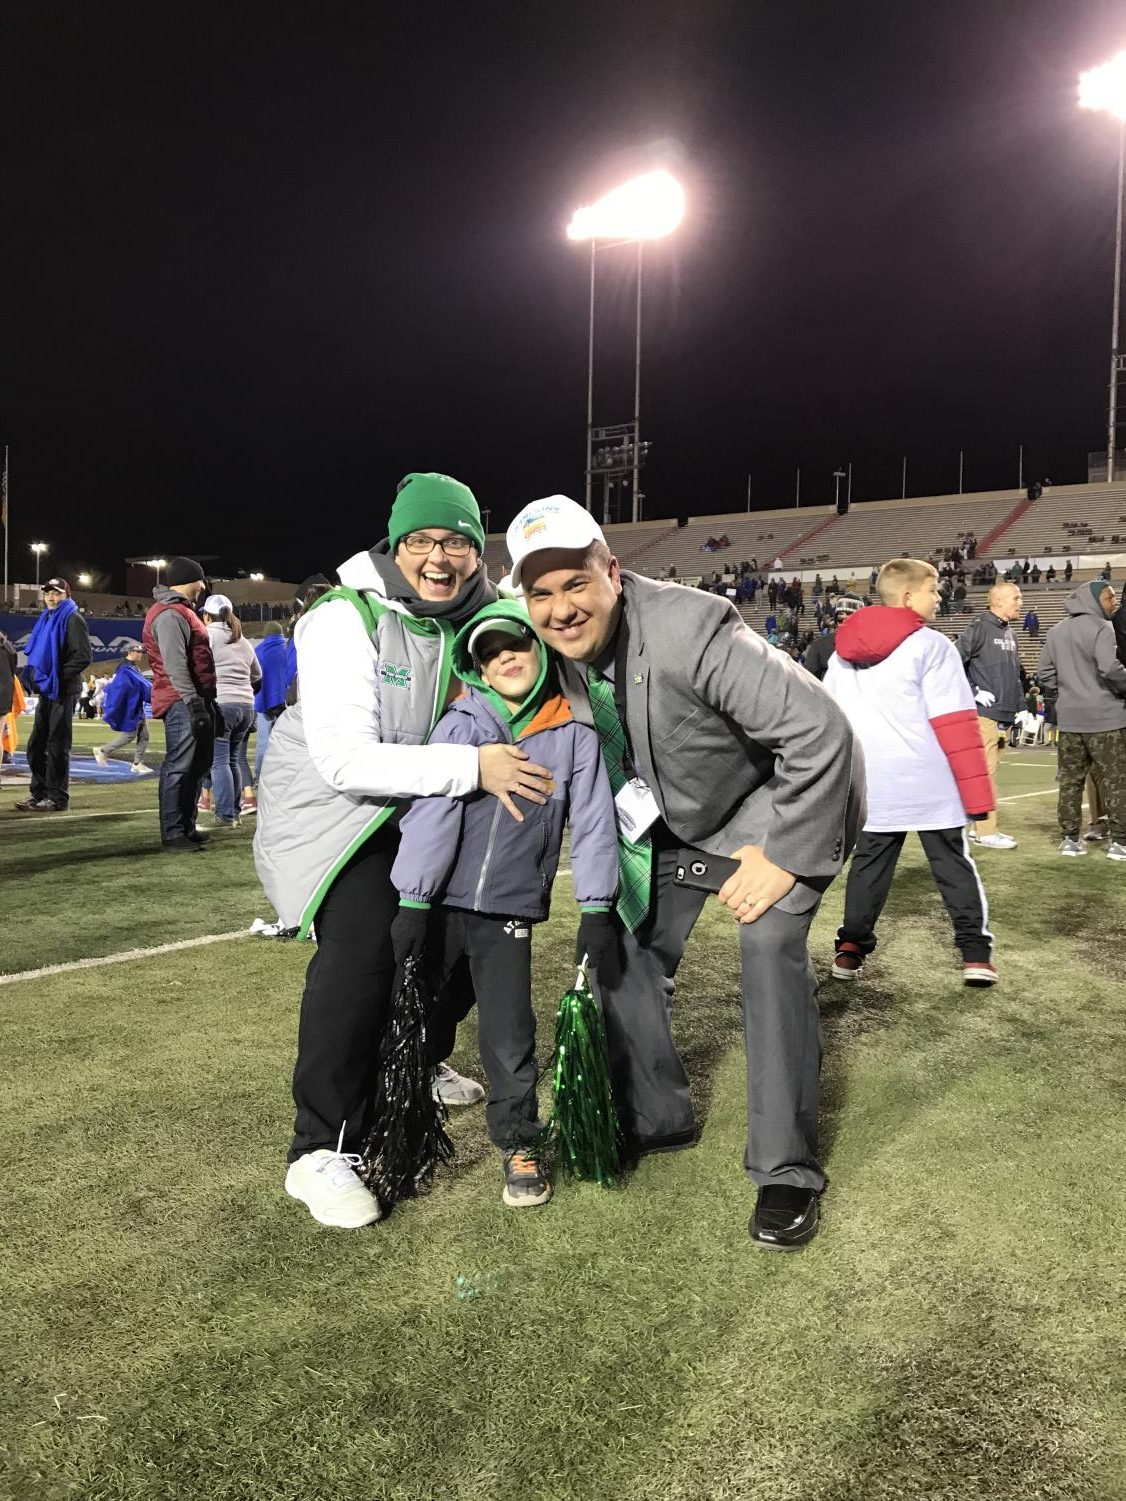 Kim Corriher, Gaffney Corriher and Jason Corriher (left-to-right) stand on the field of Dreamstyle Stadium after Marshall's 31-28 defeat of Colorado State in the Gildan New Mexico Bowl.